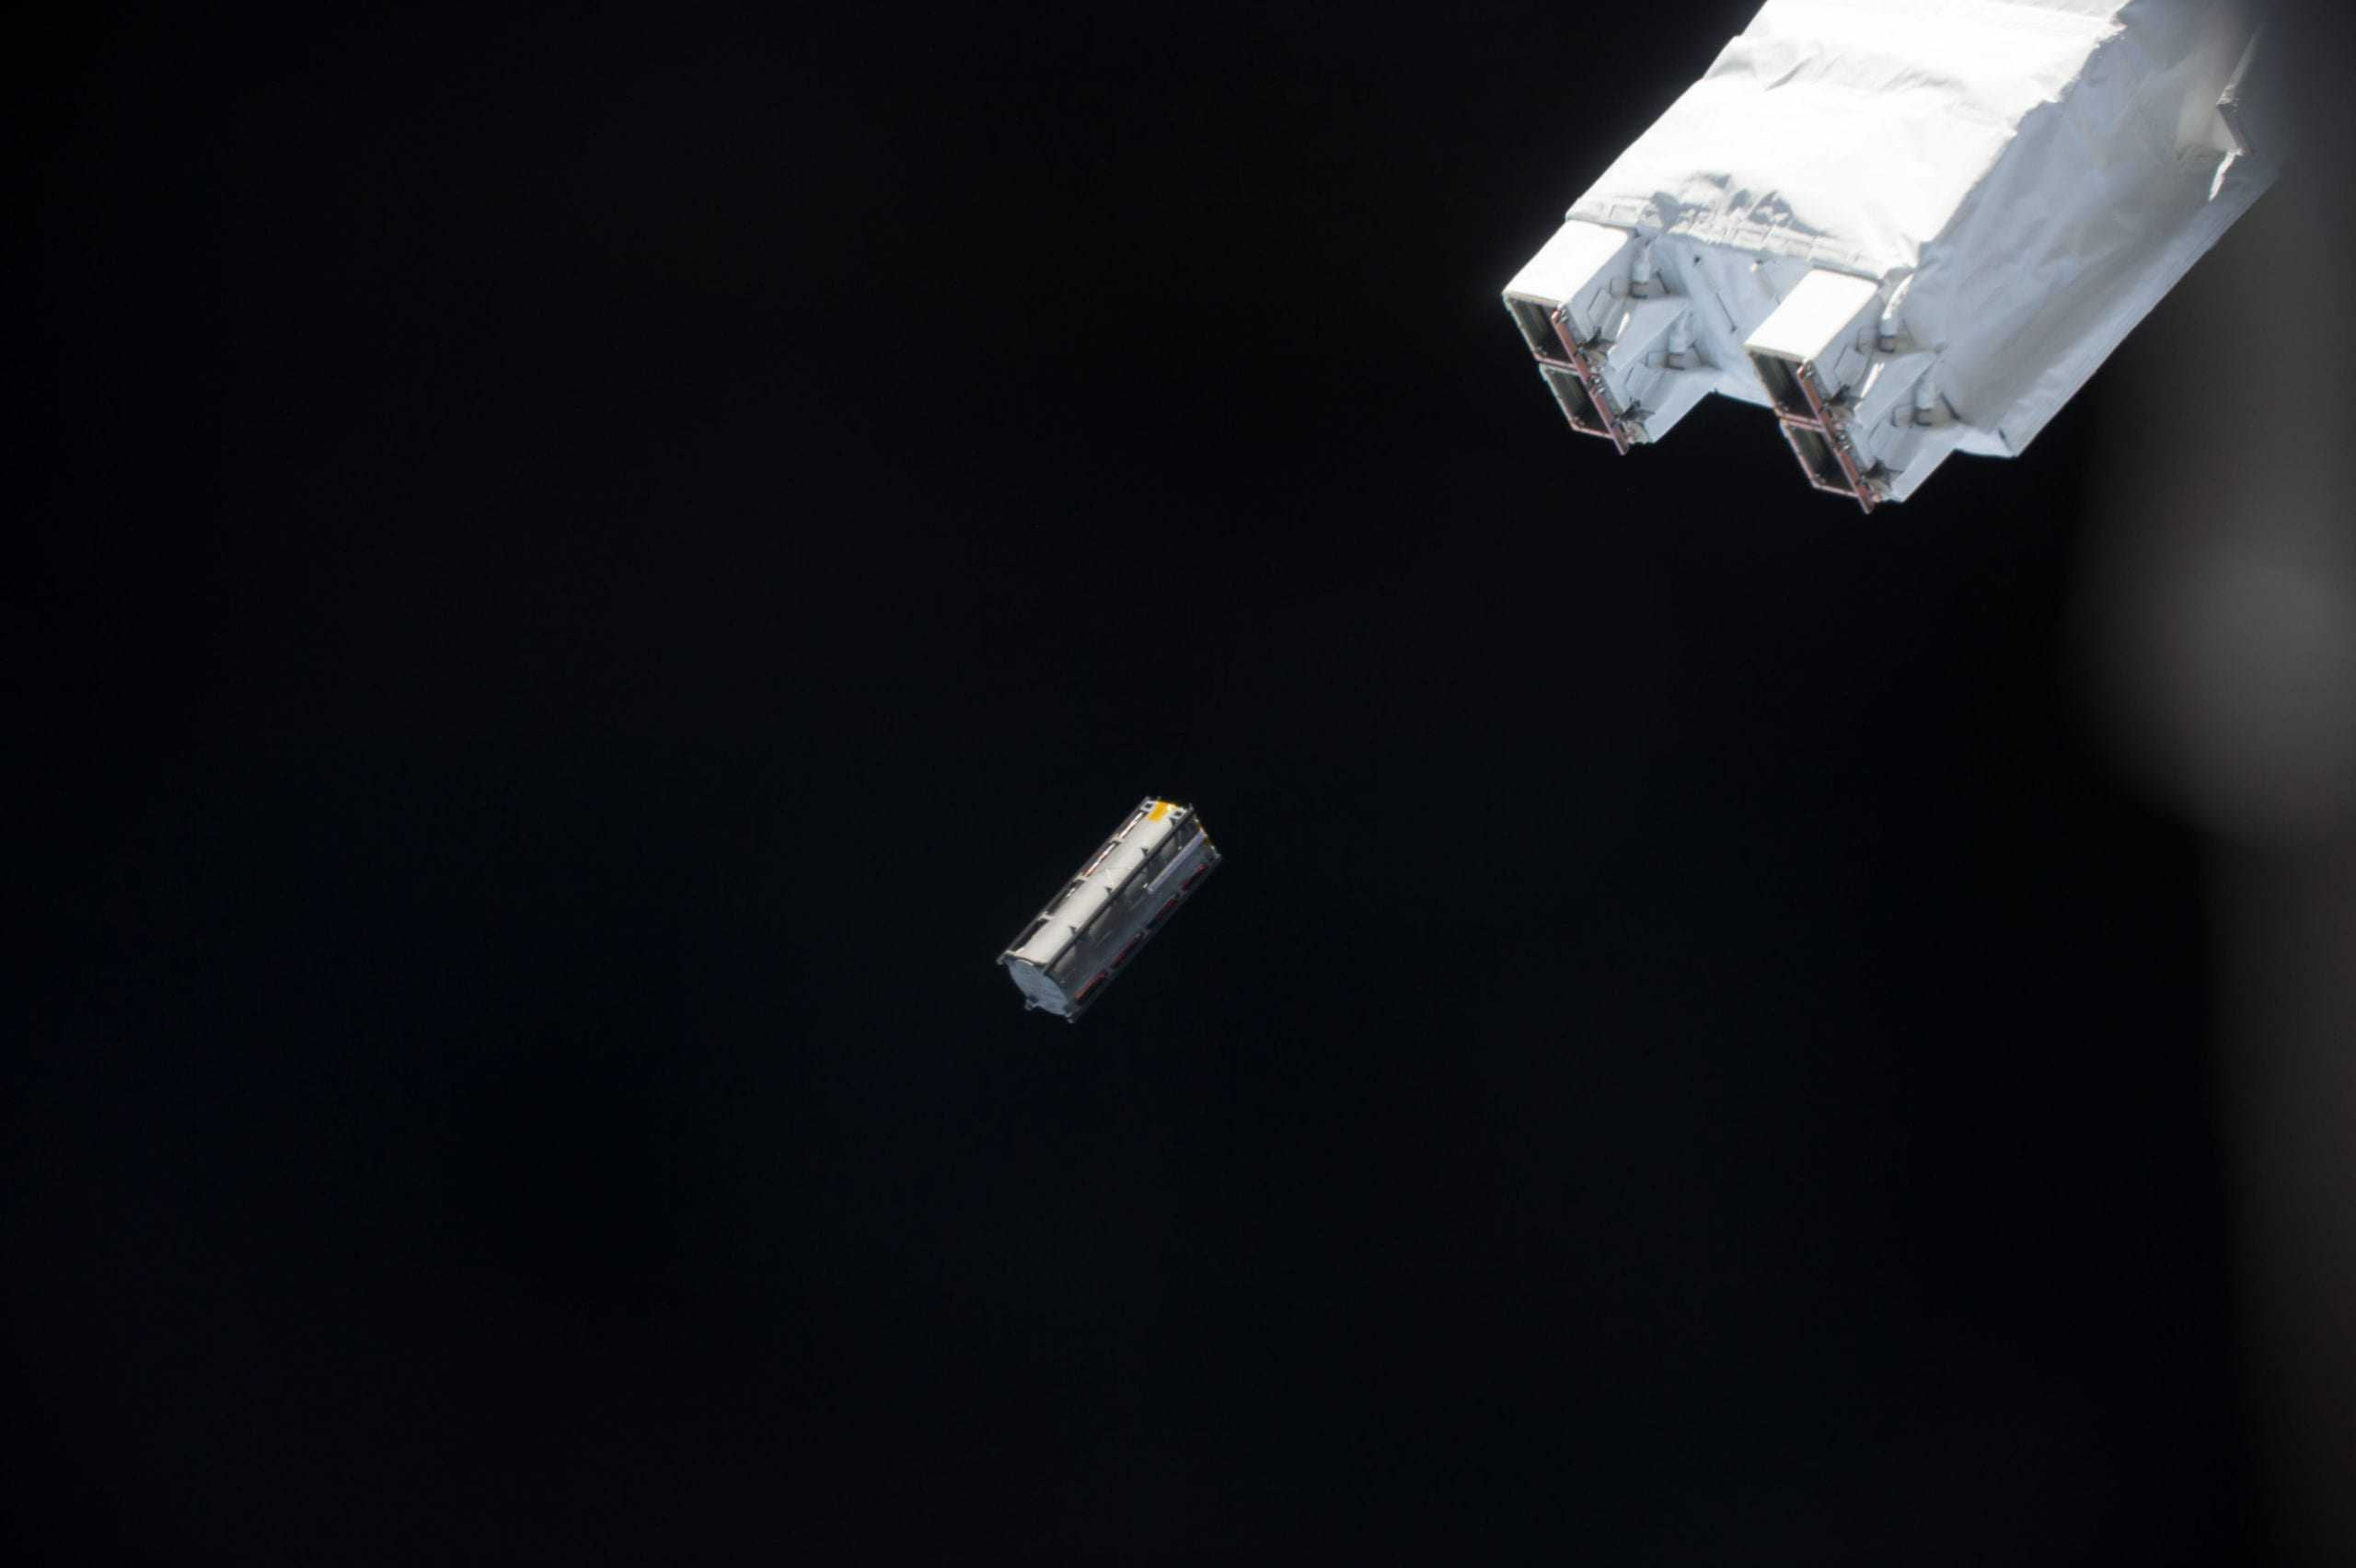 Launch of CRP USA TuPOD satellite from ISS